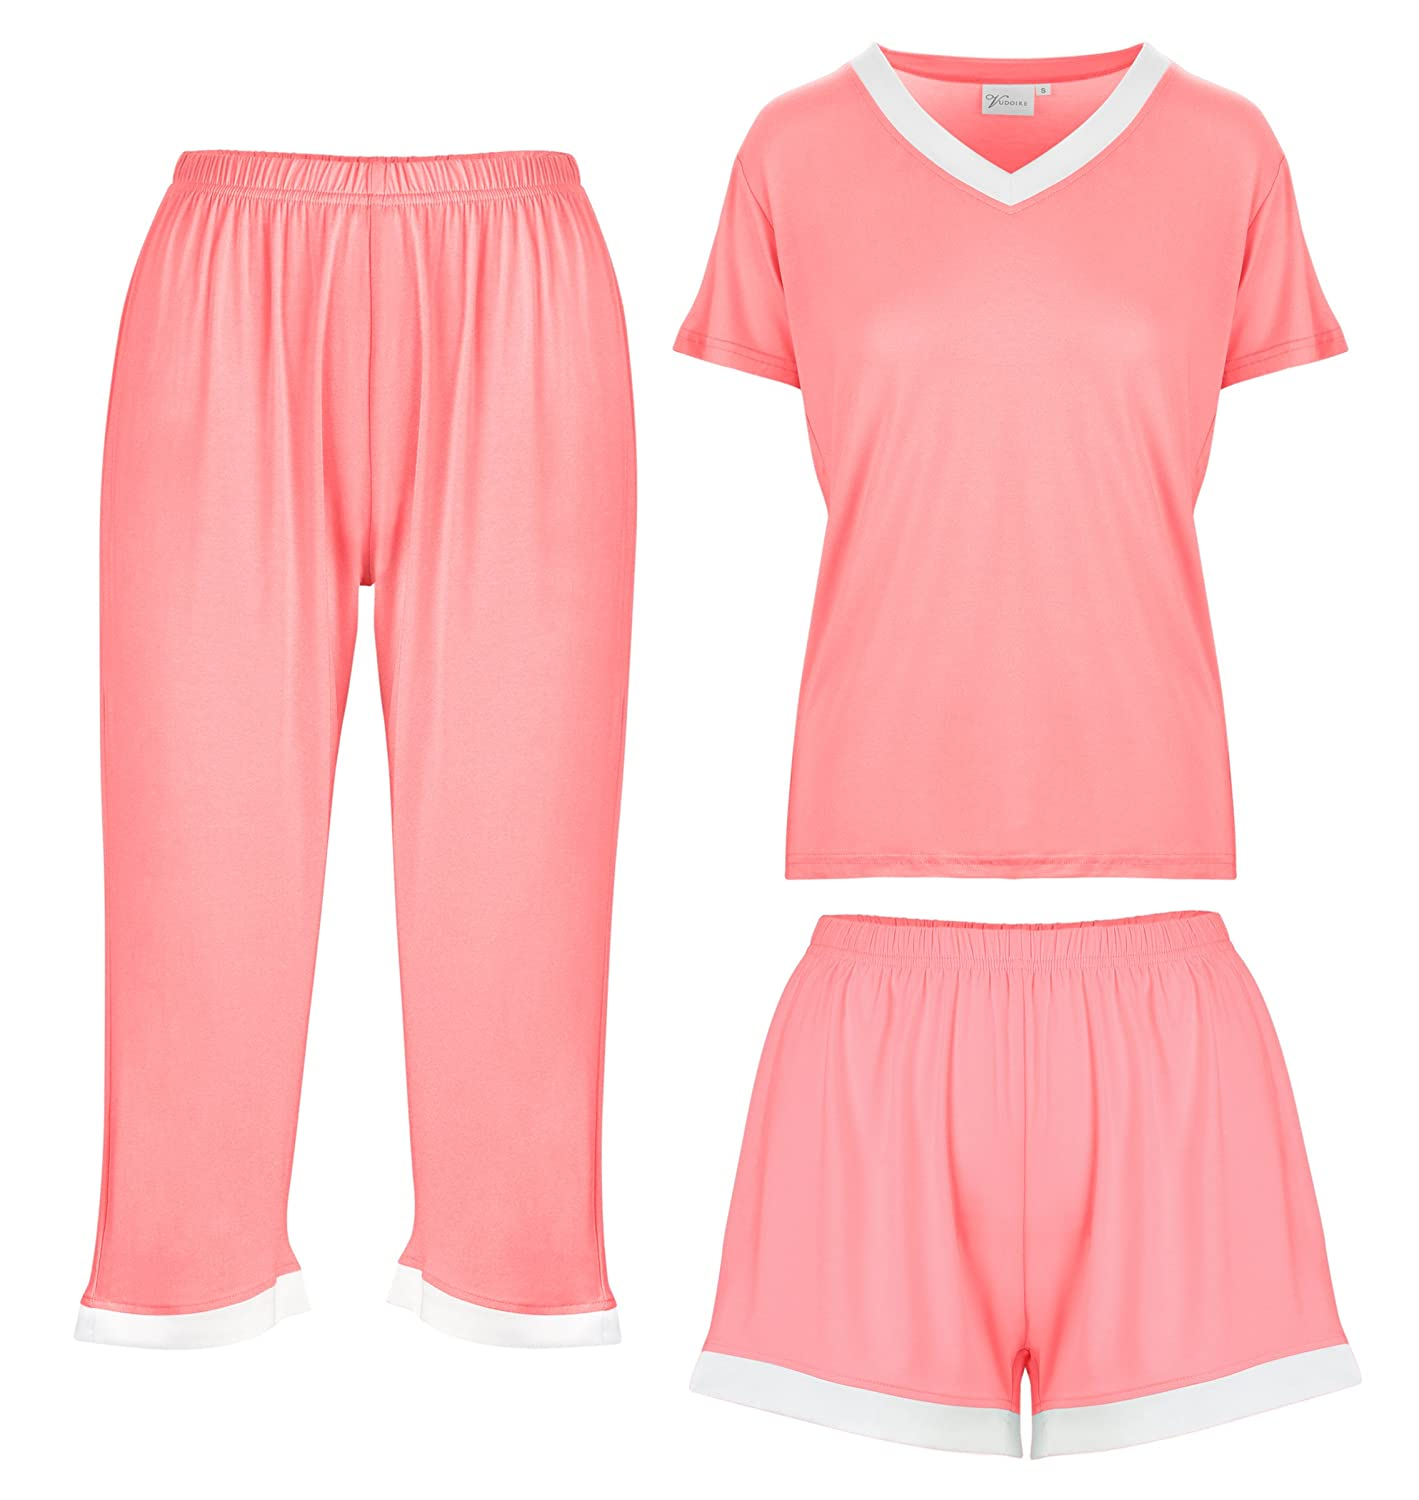 Bamboo Women's Pajamas Sleepwear 3 Piece Set: Capri Pajama Pants Loungewear Shorts & Top Ultra Soft and Comfortable